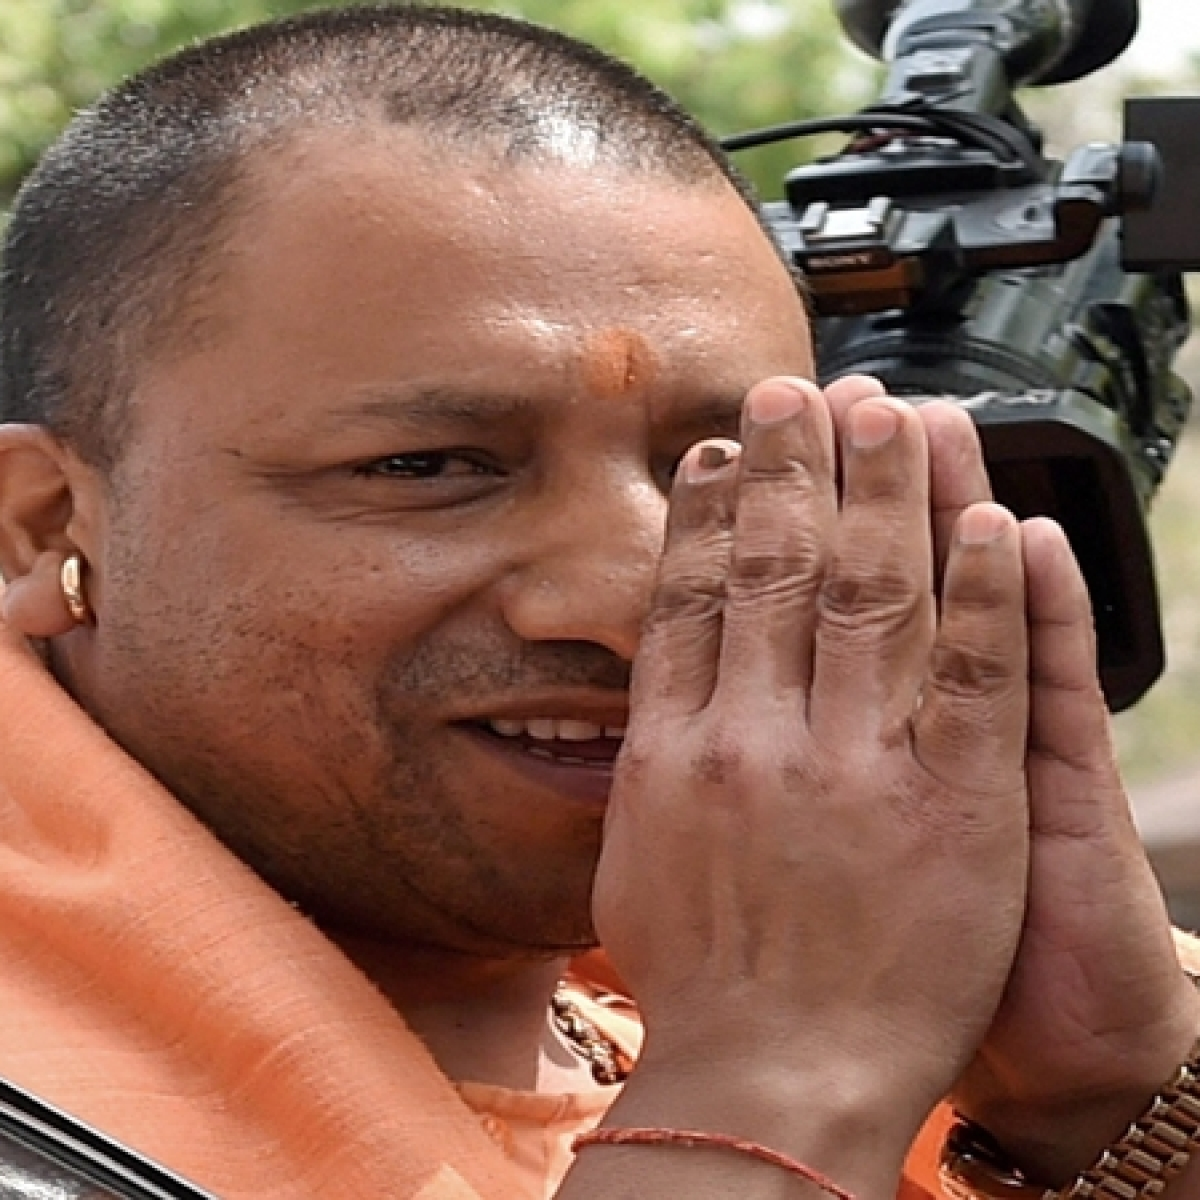 20-year-old murder case against Yogi Adityanath dismissed by special court